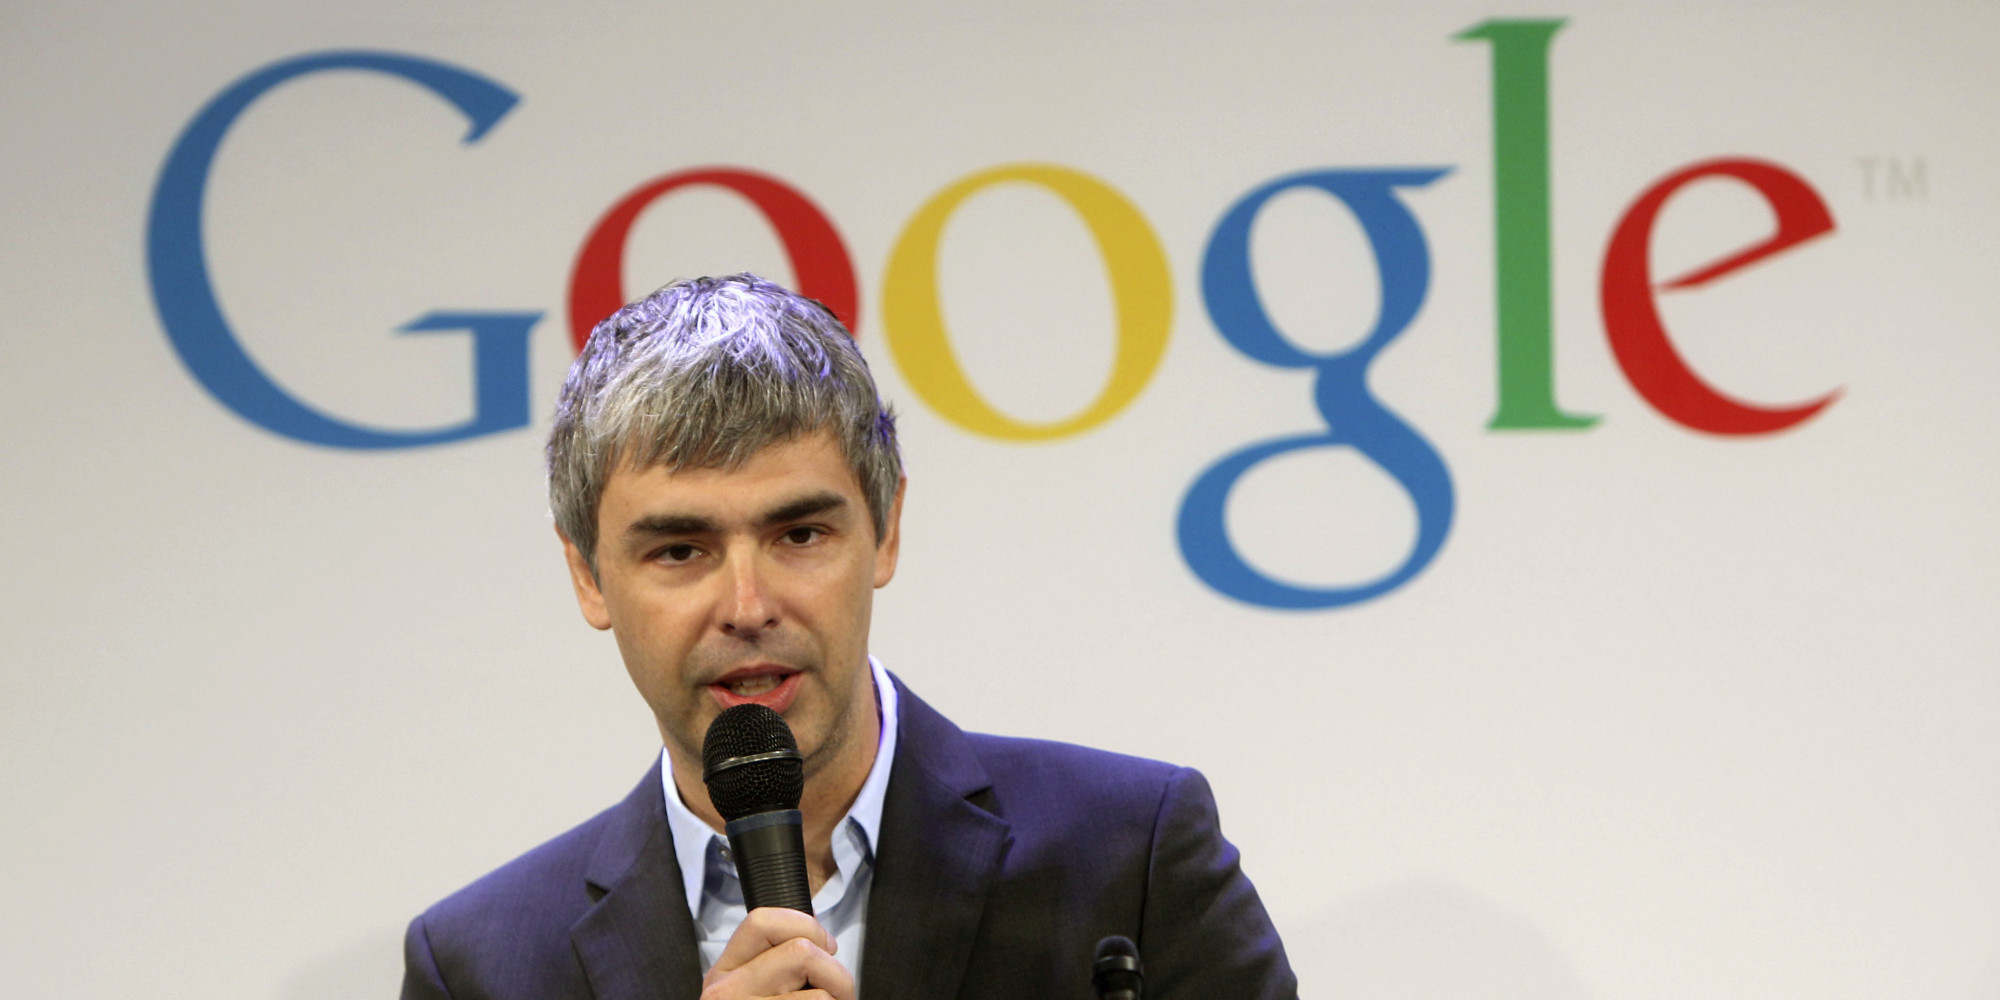 Why Google's Larry Page Is The Highest-Rated CEO In